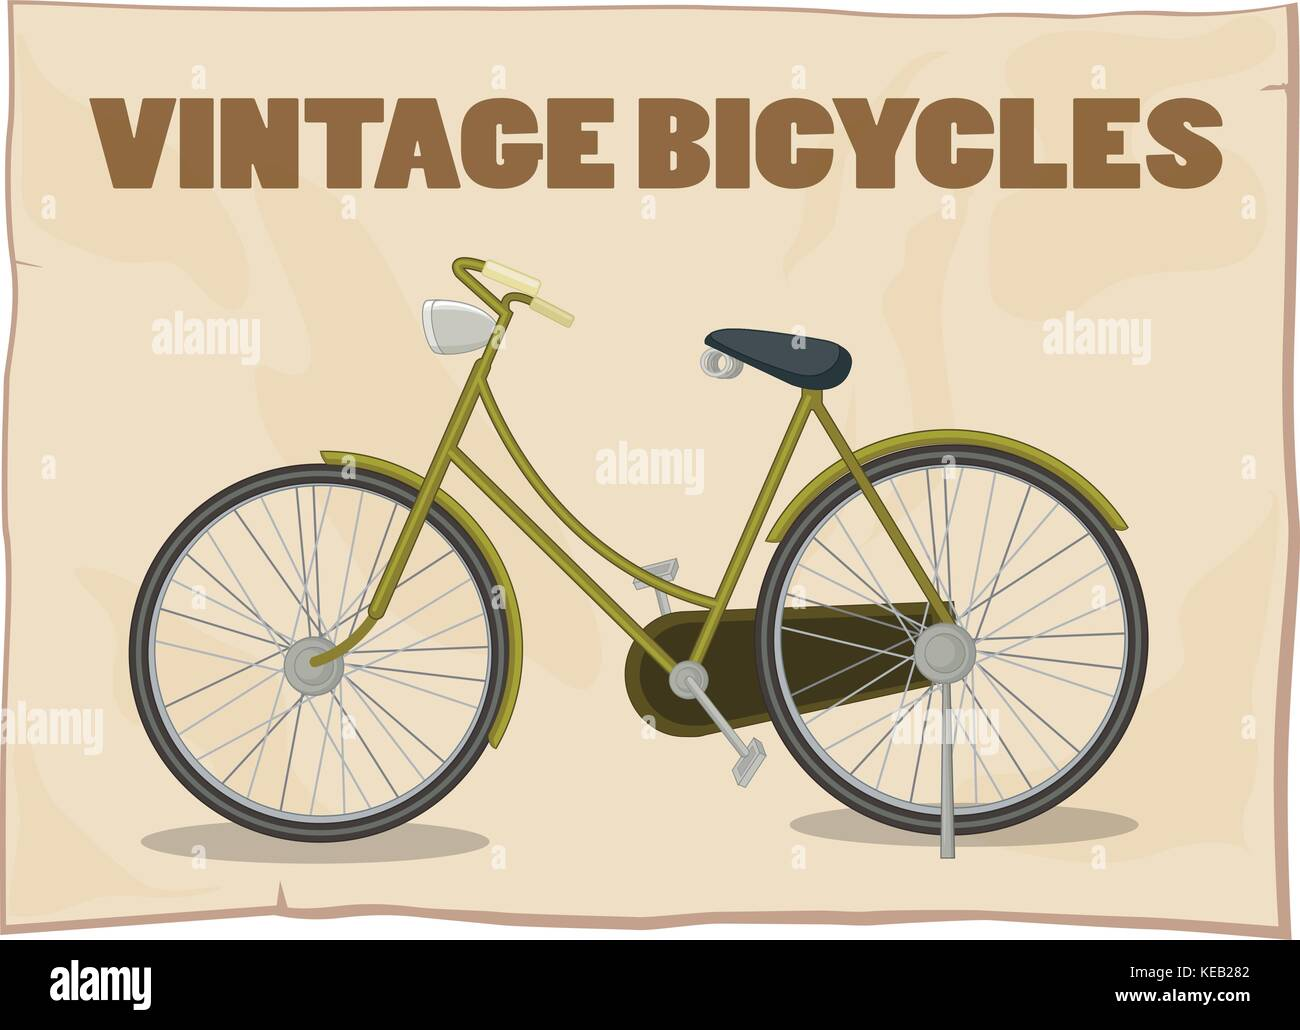 Single vintage bicycle on the poster - Stock Image